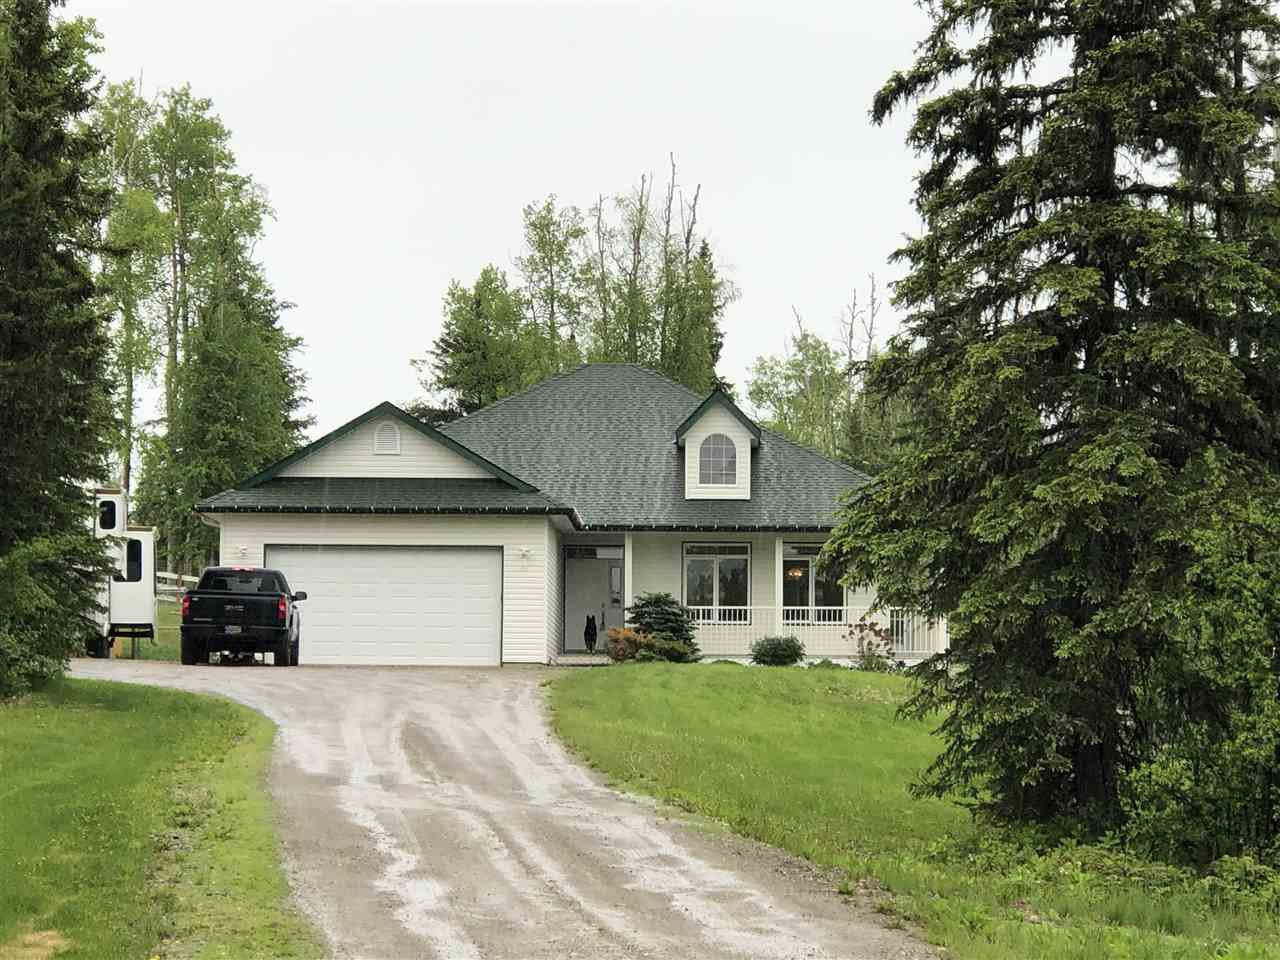 Main Photo: 10280 MAURAEN Drive in Prince George: Beaverley House for sale (PG Rural West (Zone 77))  : MLS®# R2447828